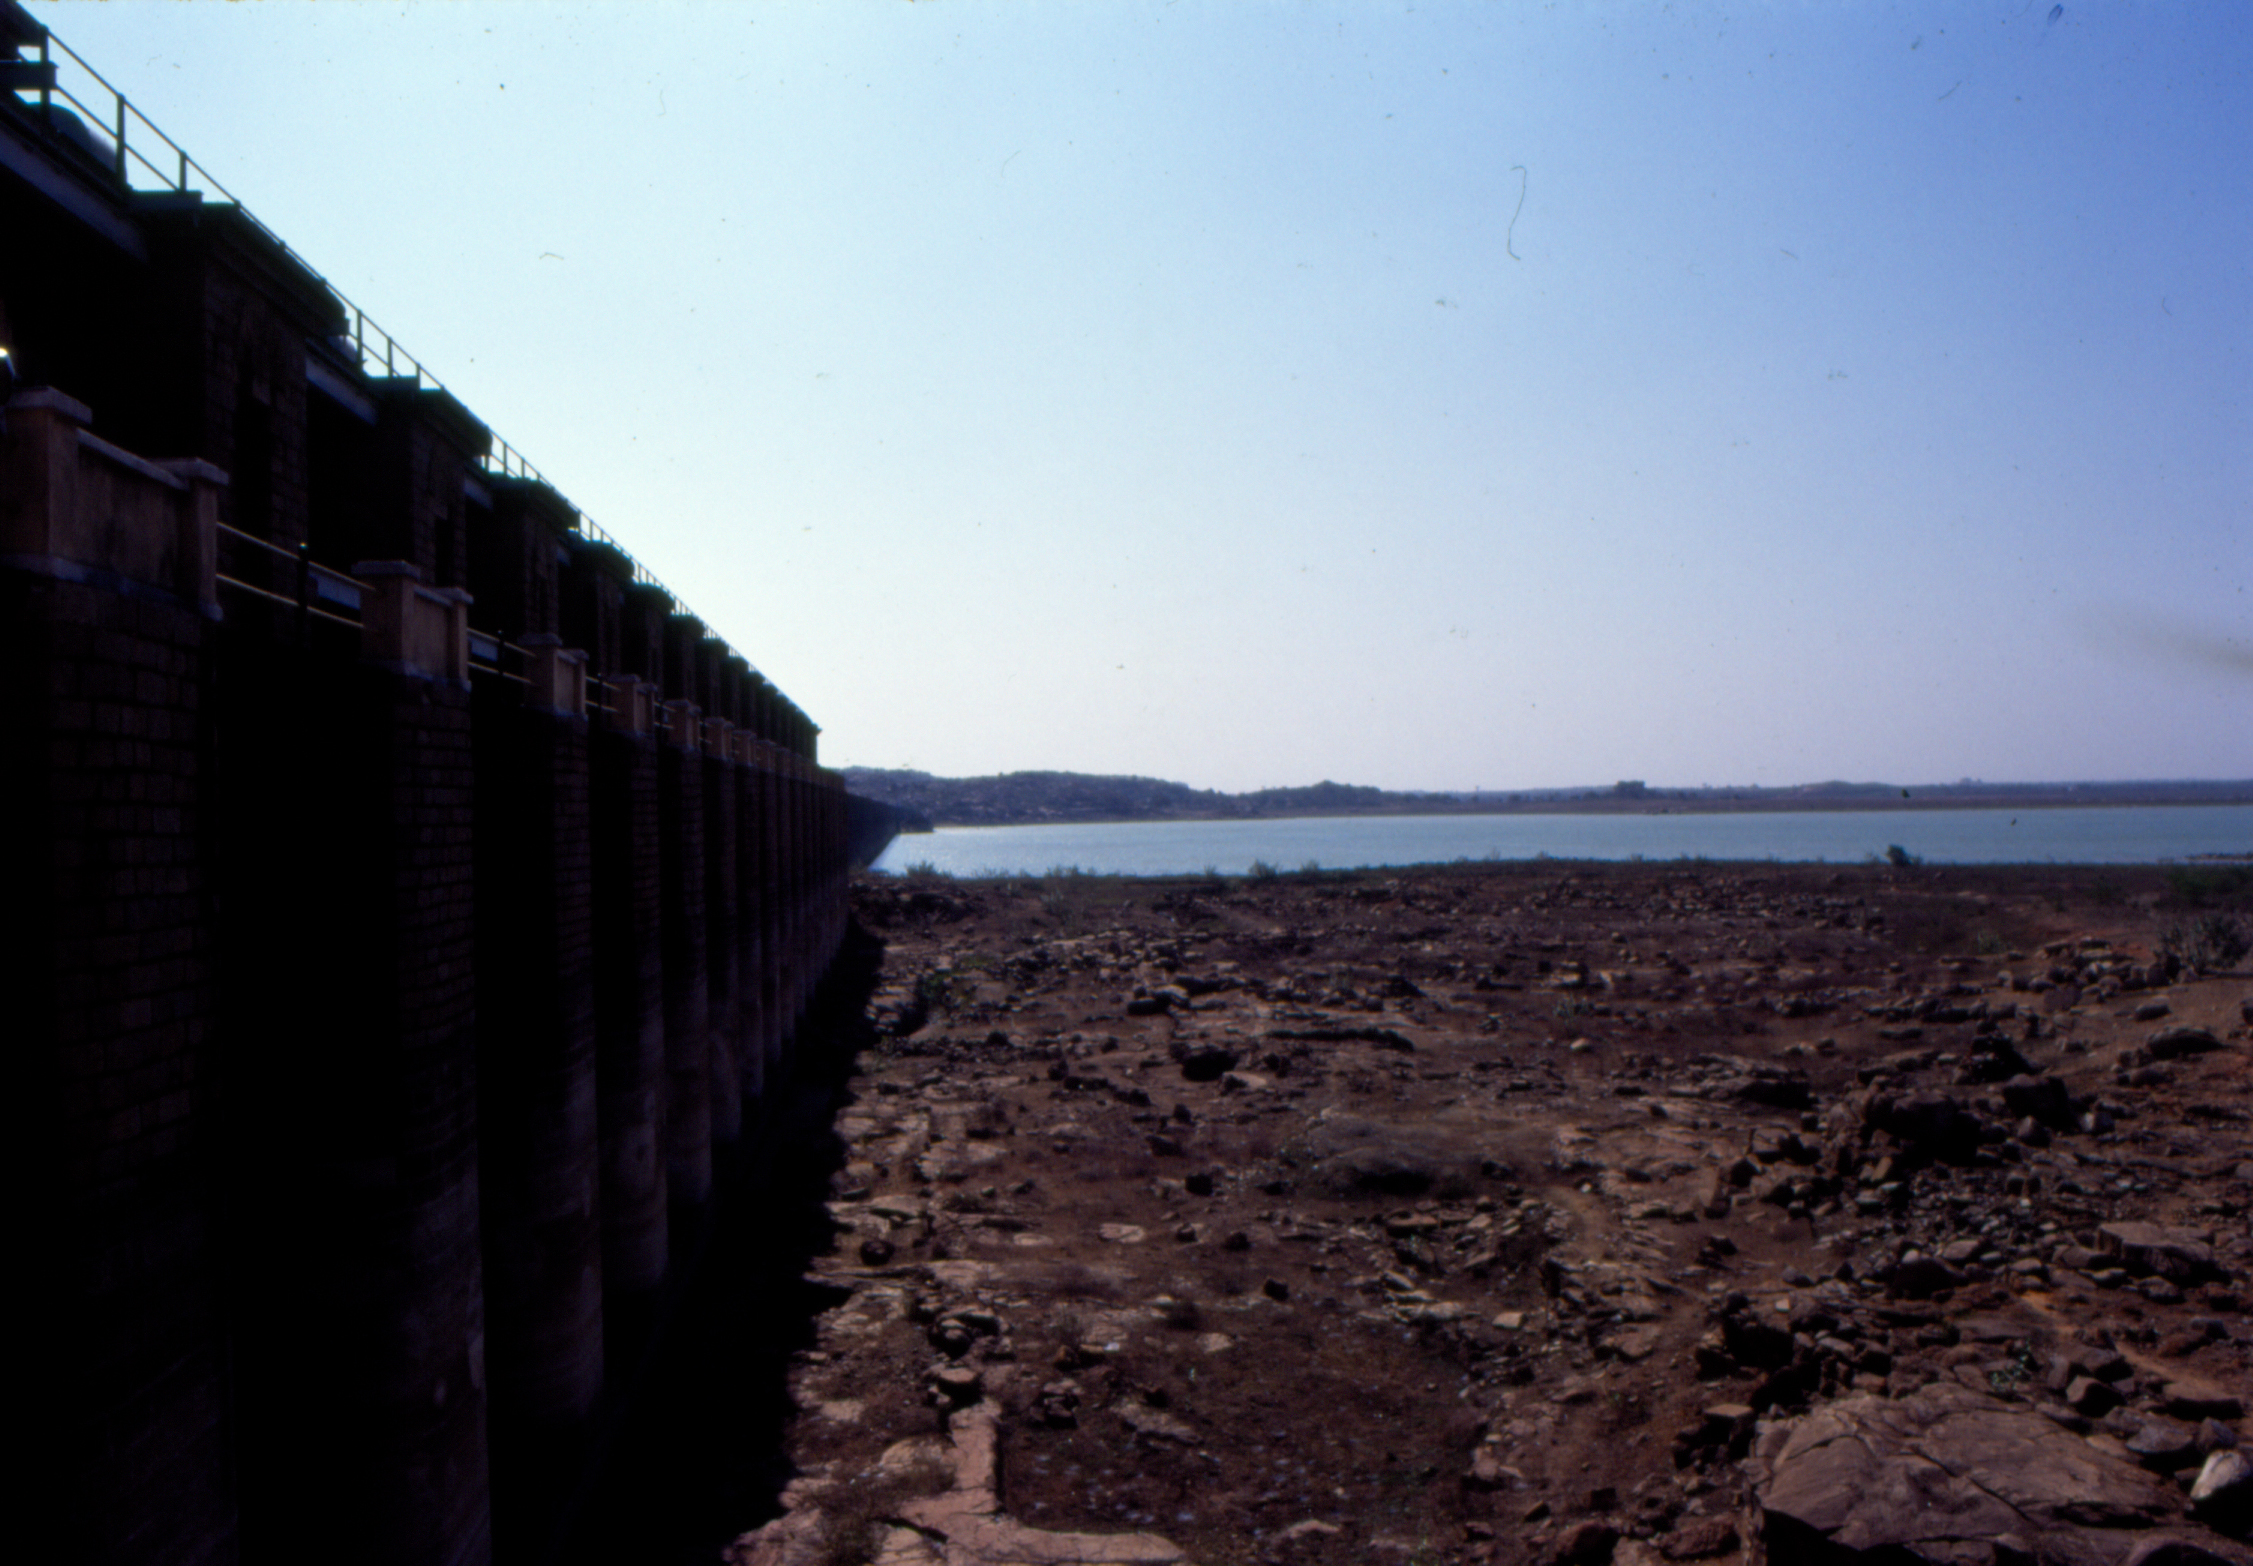 Storage level in major reservoirs sees a further dip